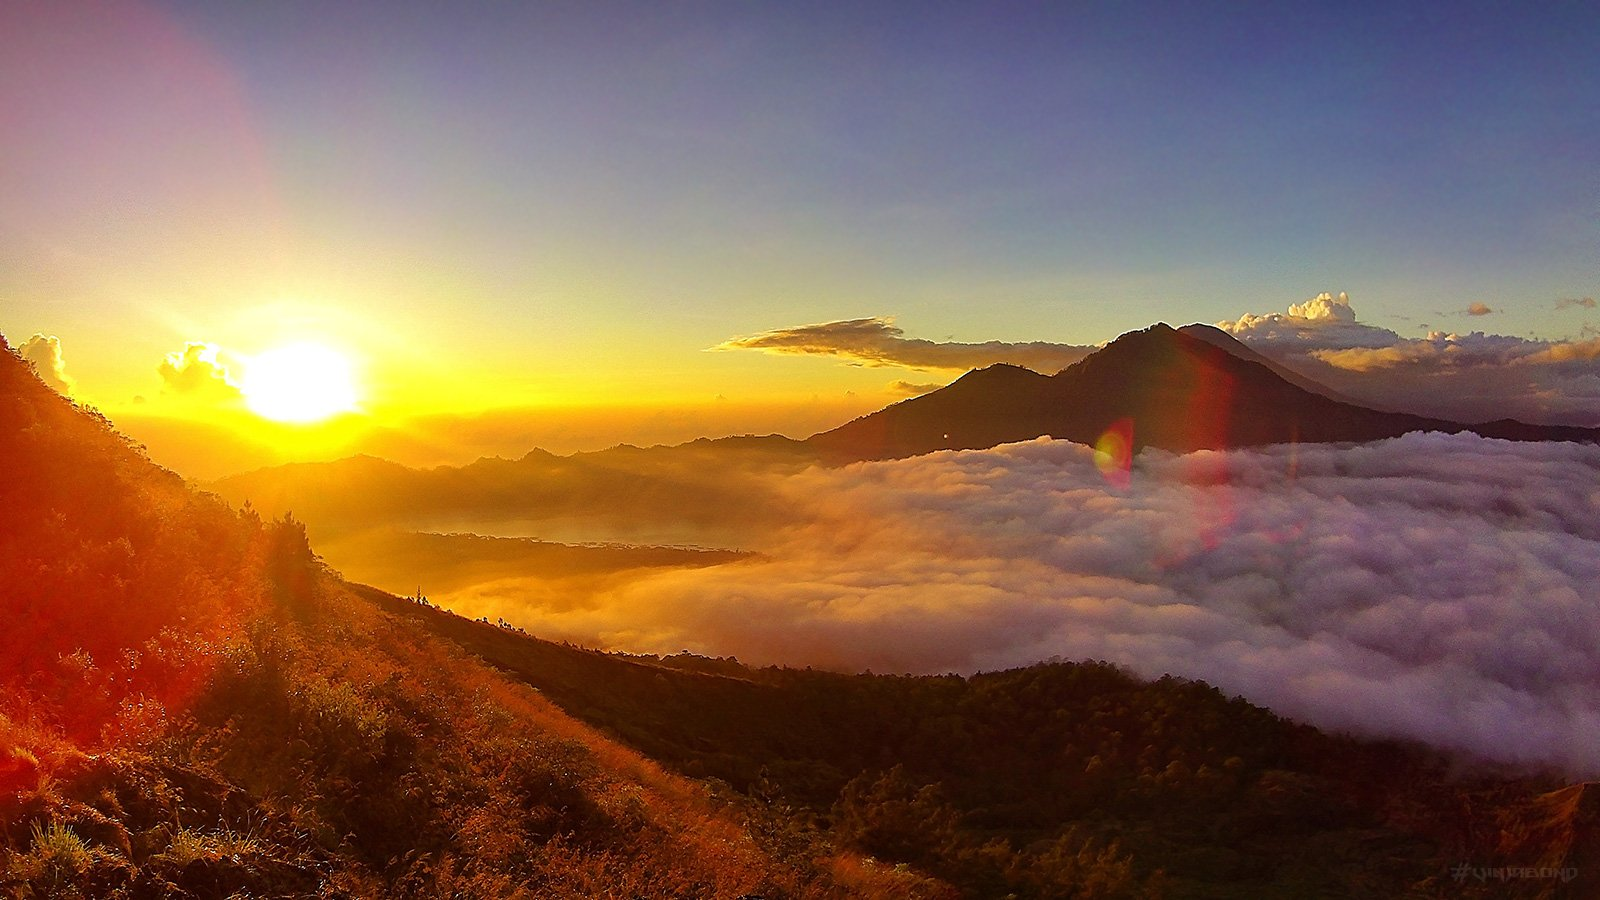 Mount Batur, seconds after sunrise /// Vinjabond